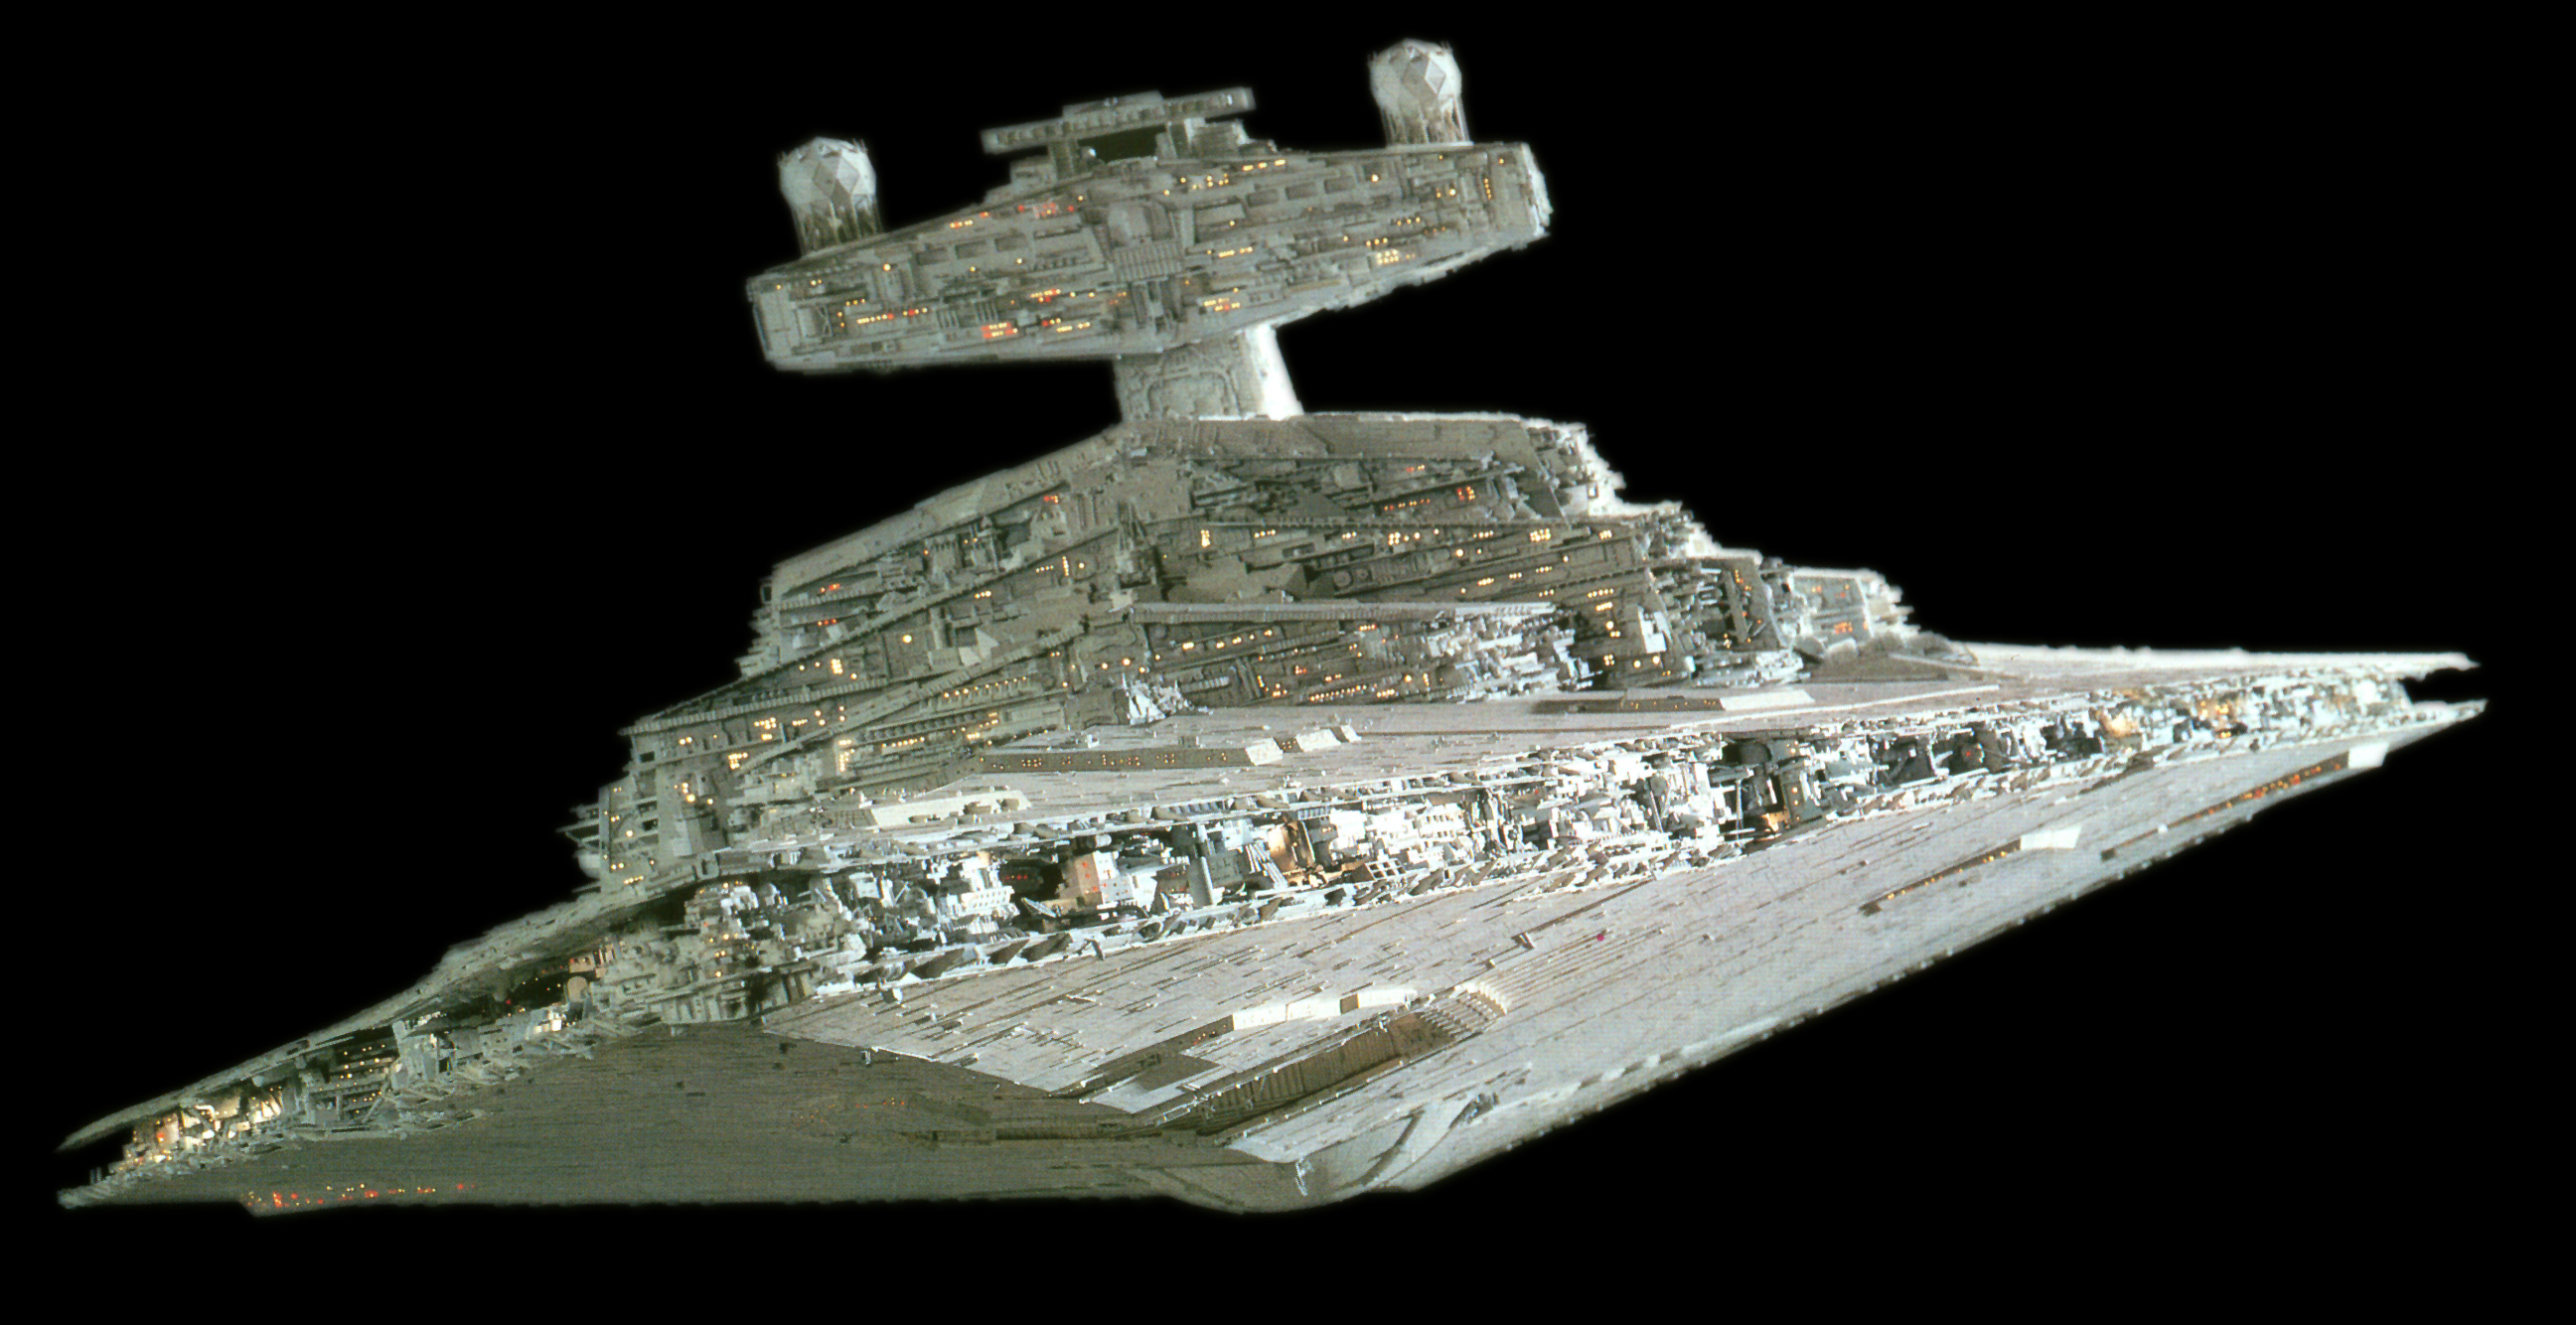 Ilm_star_destroyer.jpg